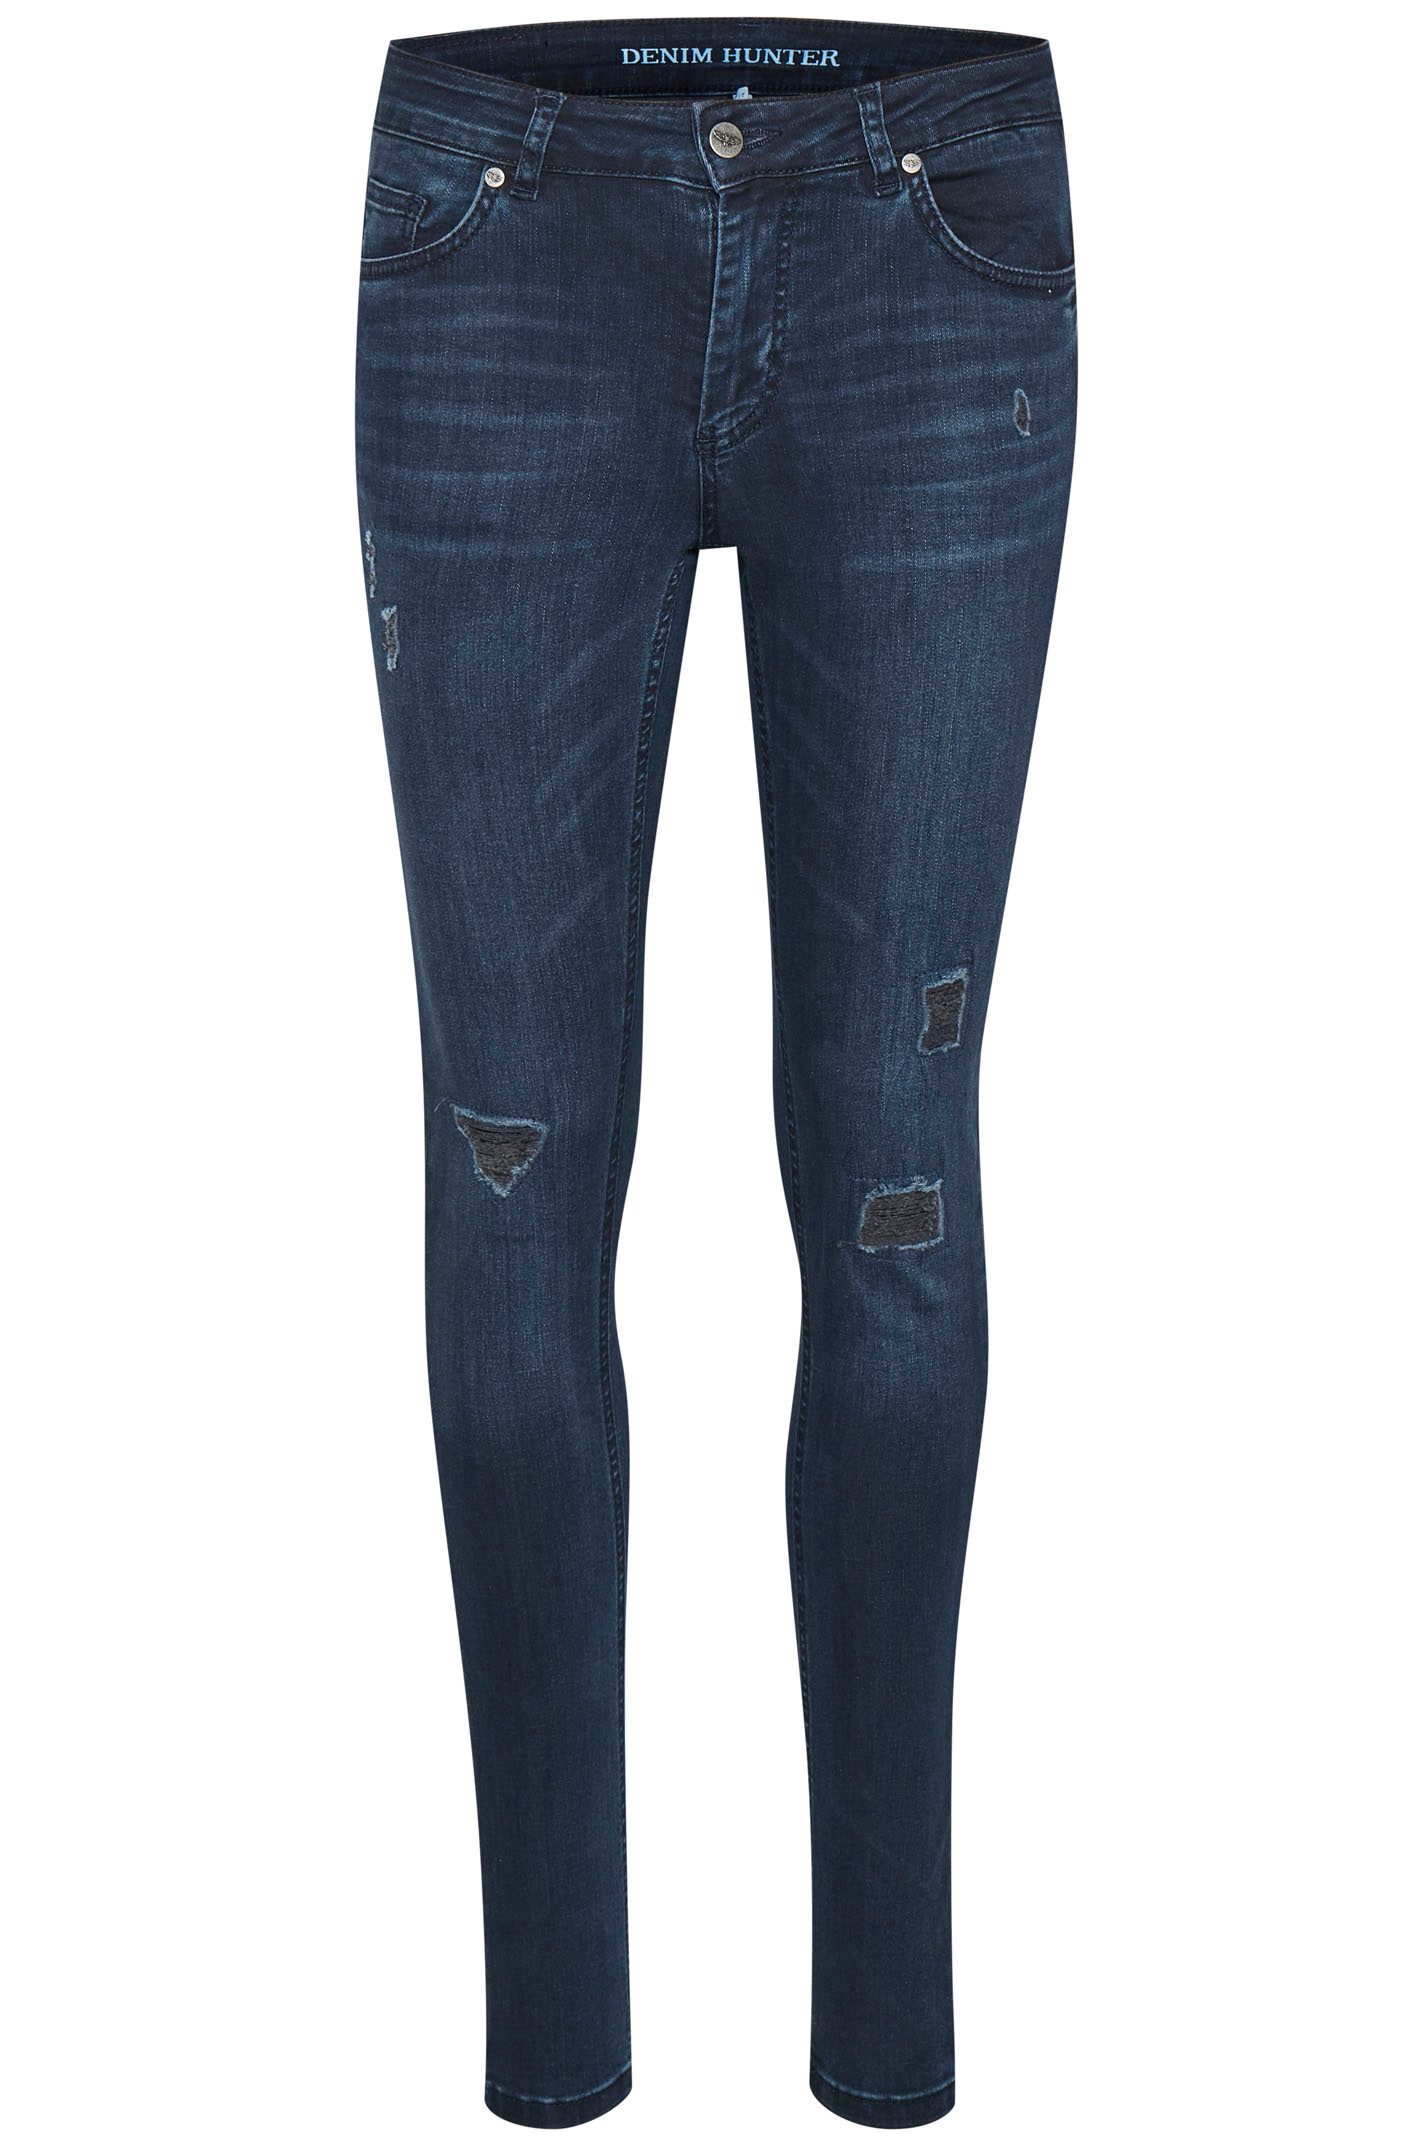 DENIM HUNTER 10702285 Dark Denim